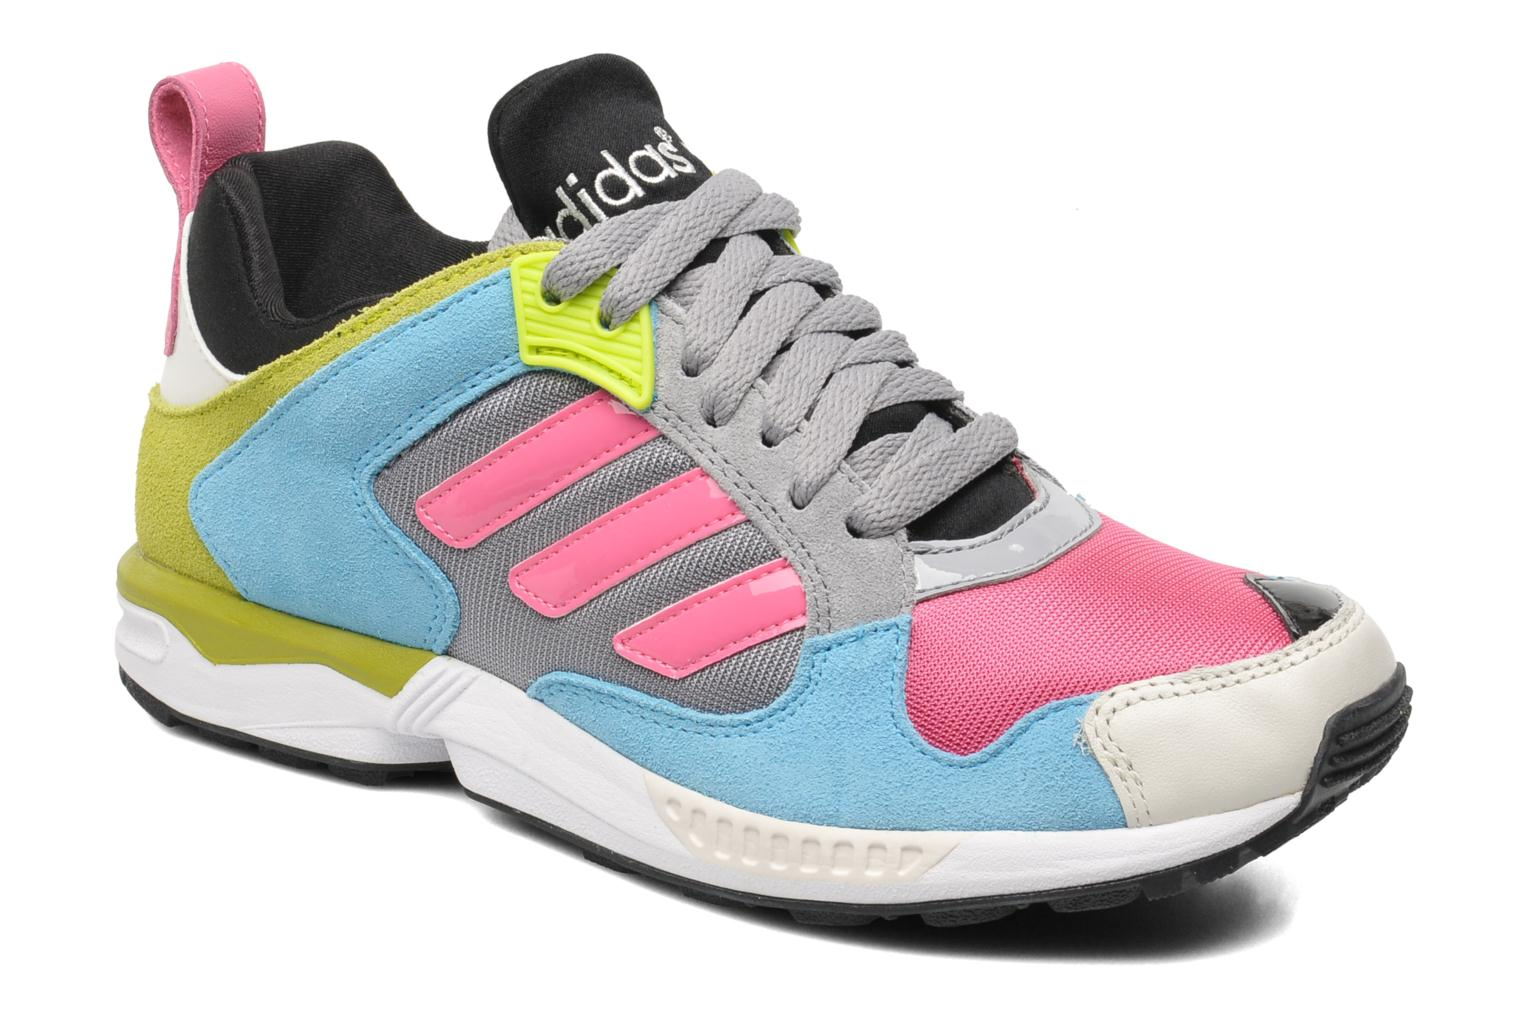 adidas originals zx 5000 rspn w trainers in multicolor at. Black Bedroom Furniture Sets. Home Design Ideas